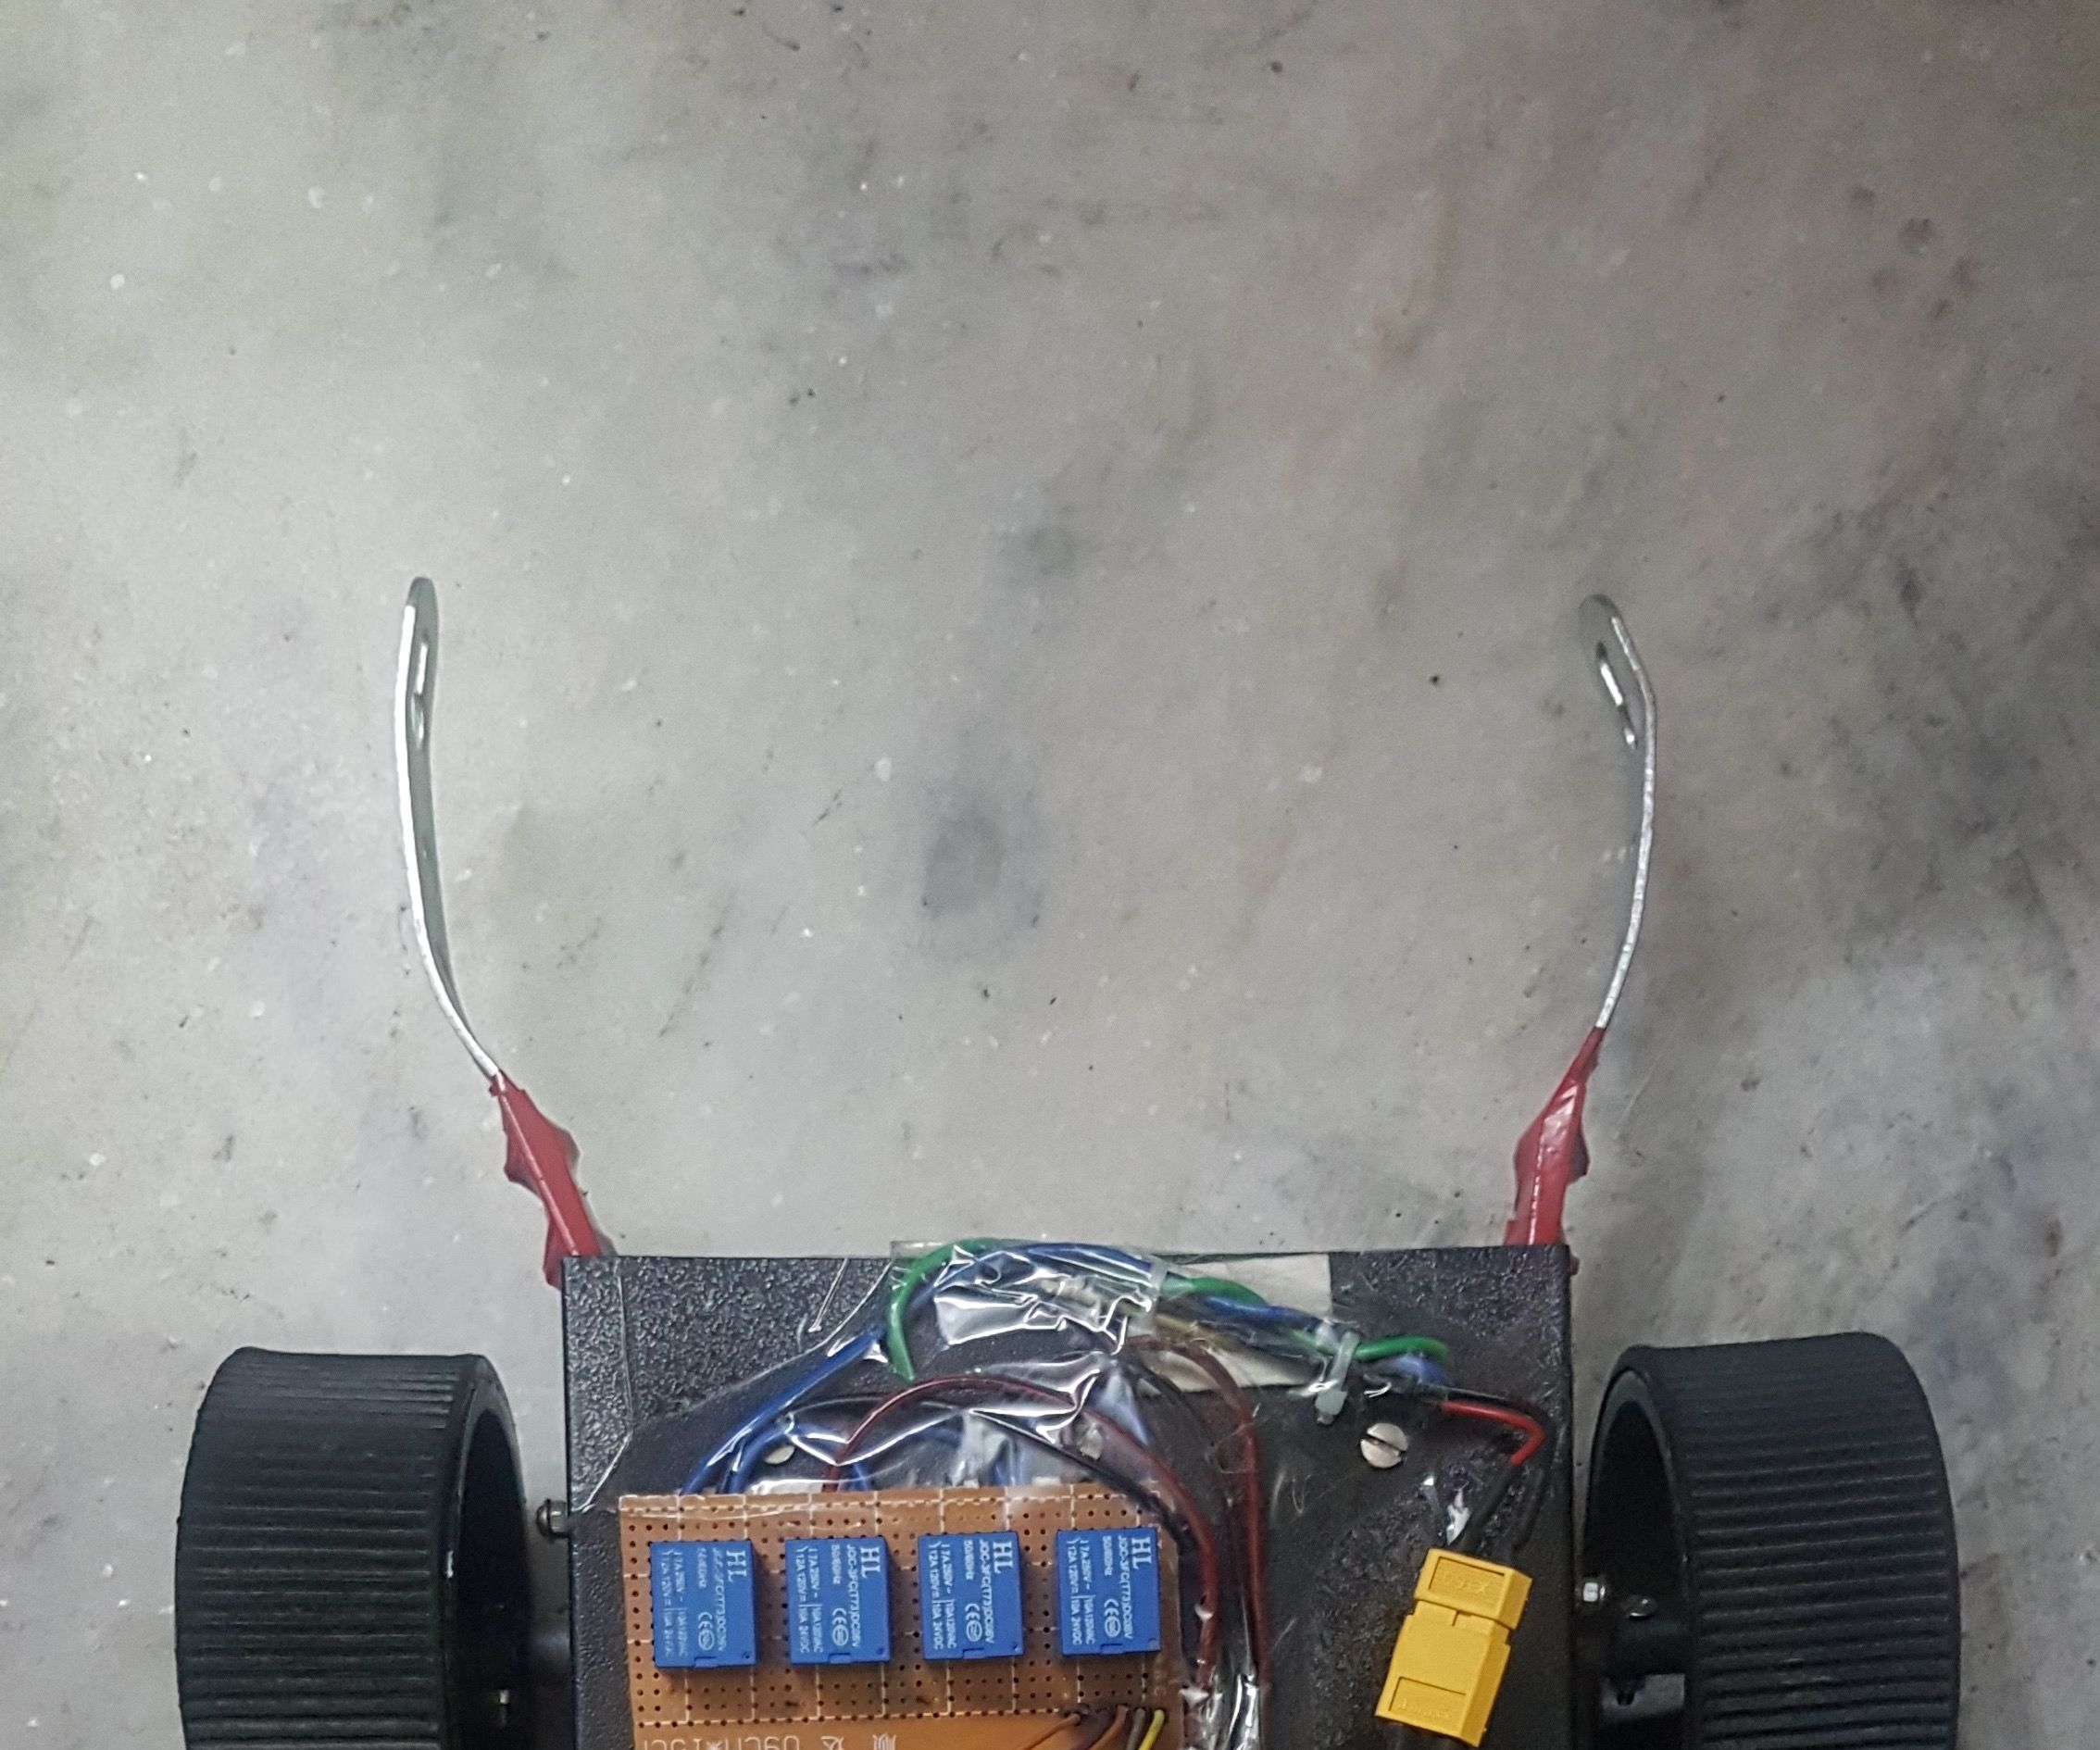 Wireless Arduino Robot Controlled by PC